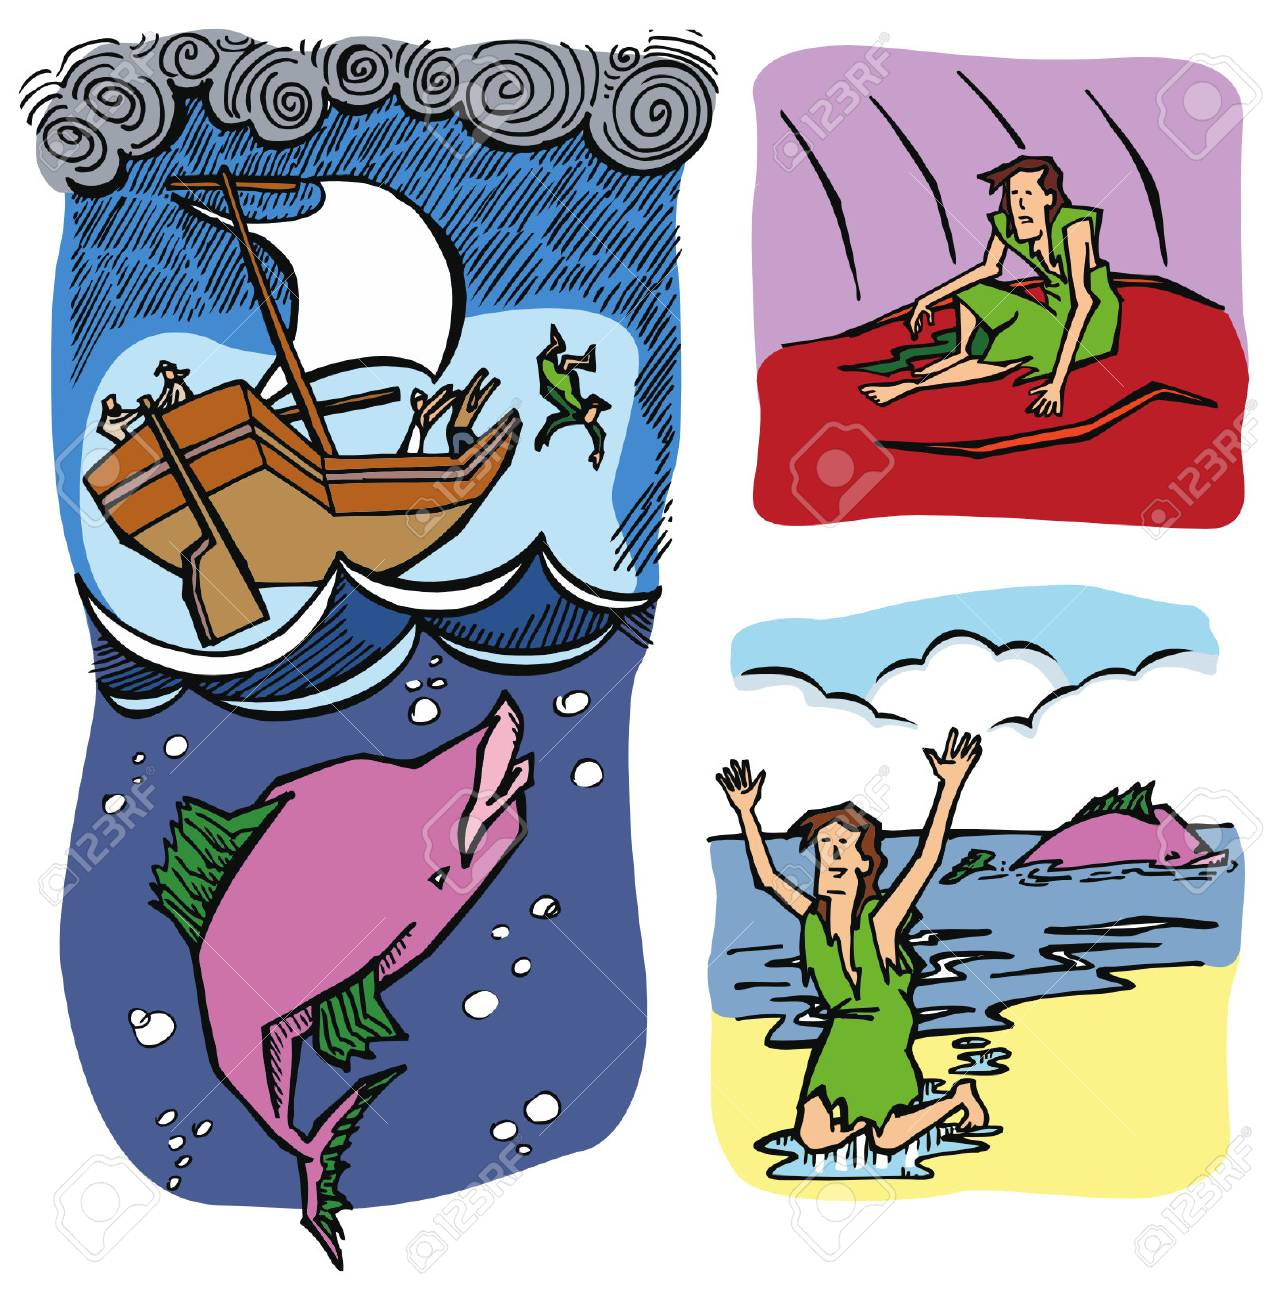 Jonah And The Whale. Royalty Free Cliparts, Vectors, And Stock.